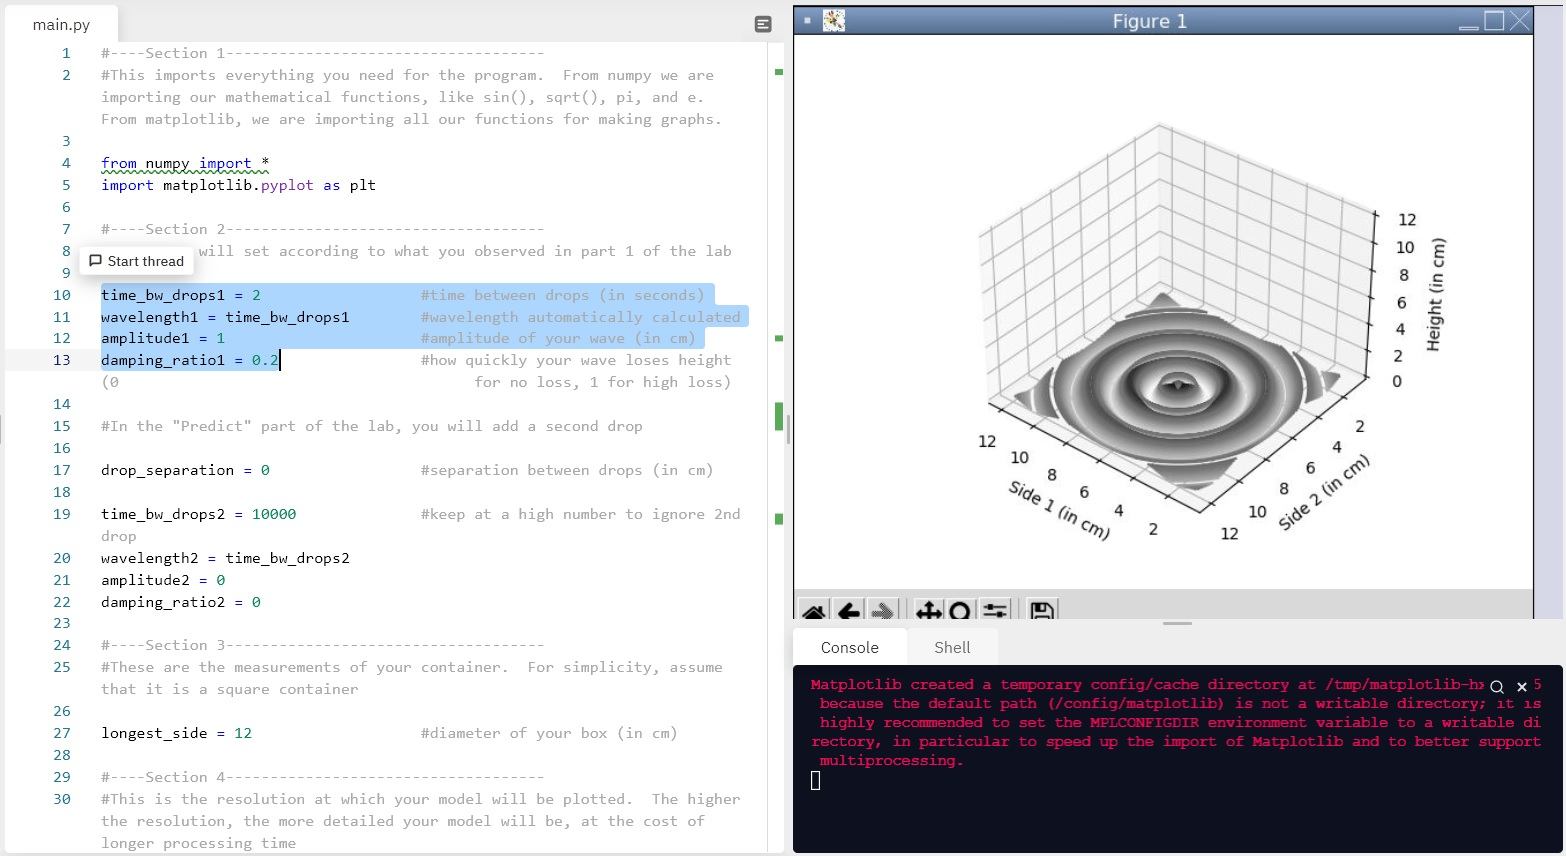 Split screen showing Python coding on the left, with model assumptions that students can modify on the left, and the visual model output shown on the right